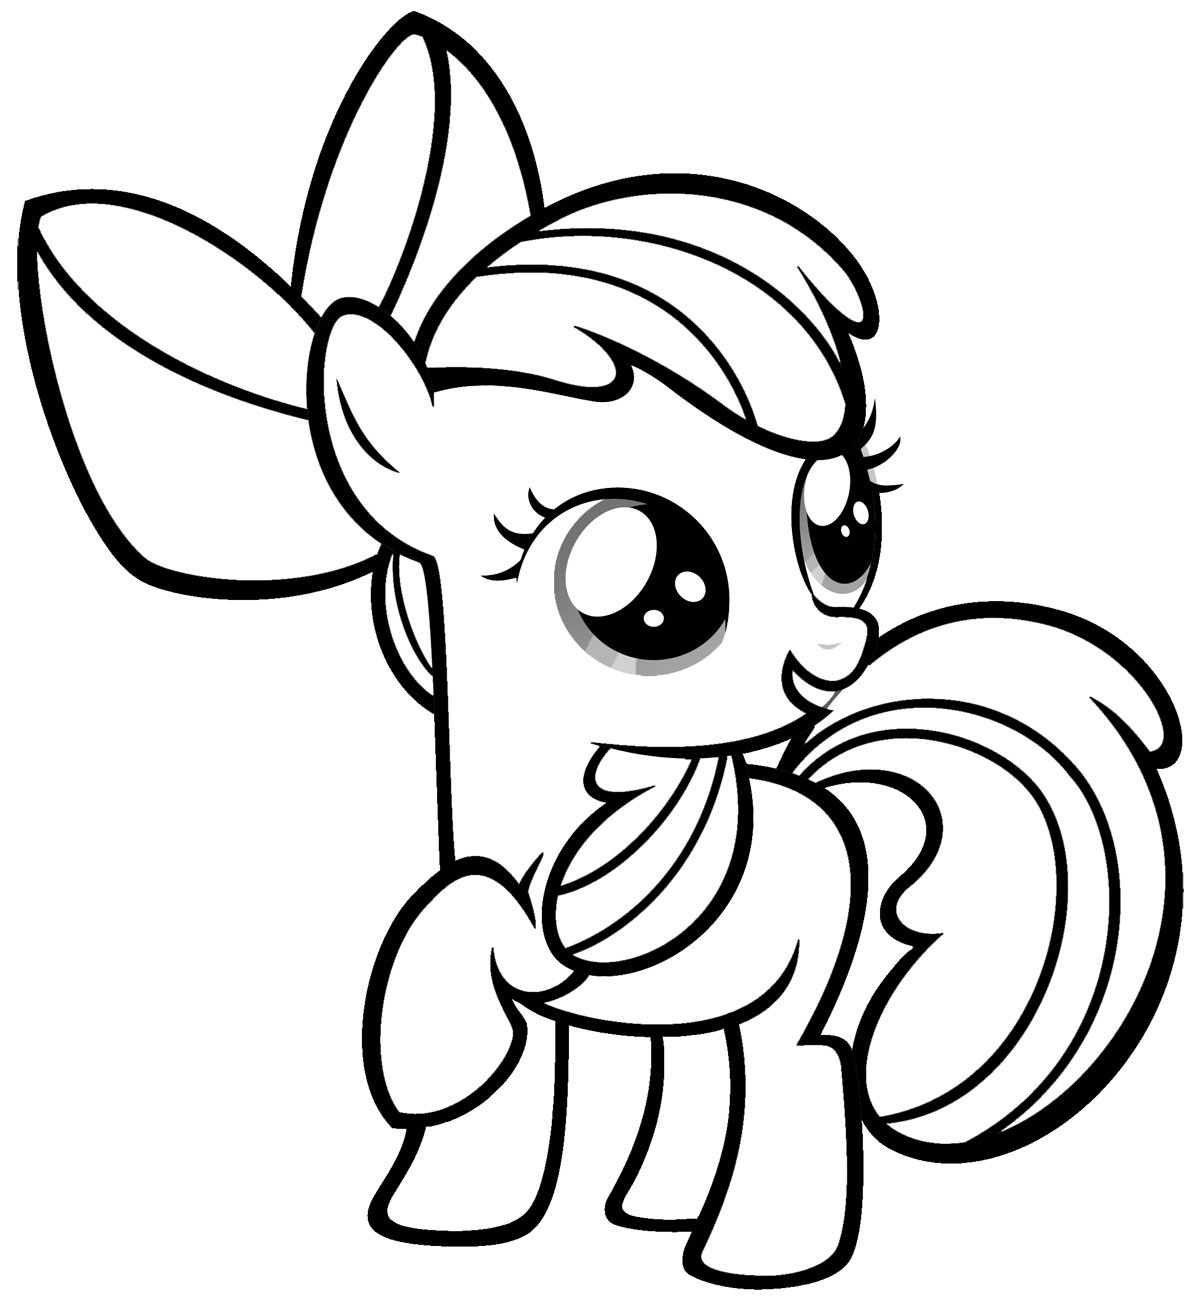 y little pony coloring pages - photo #5